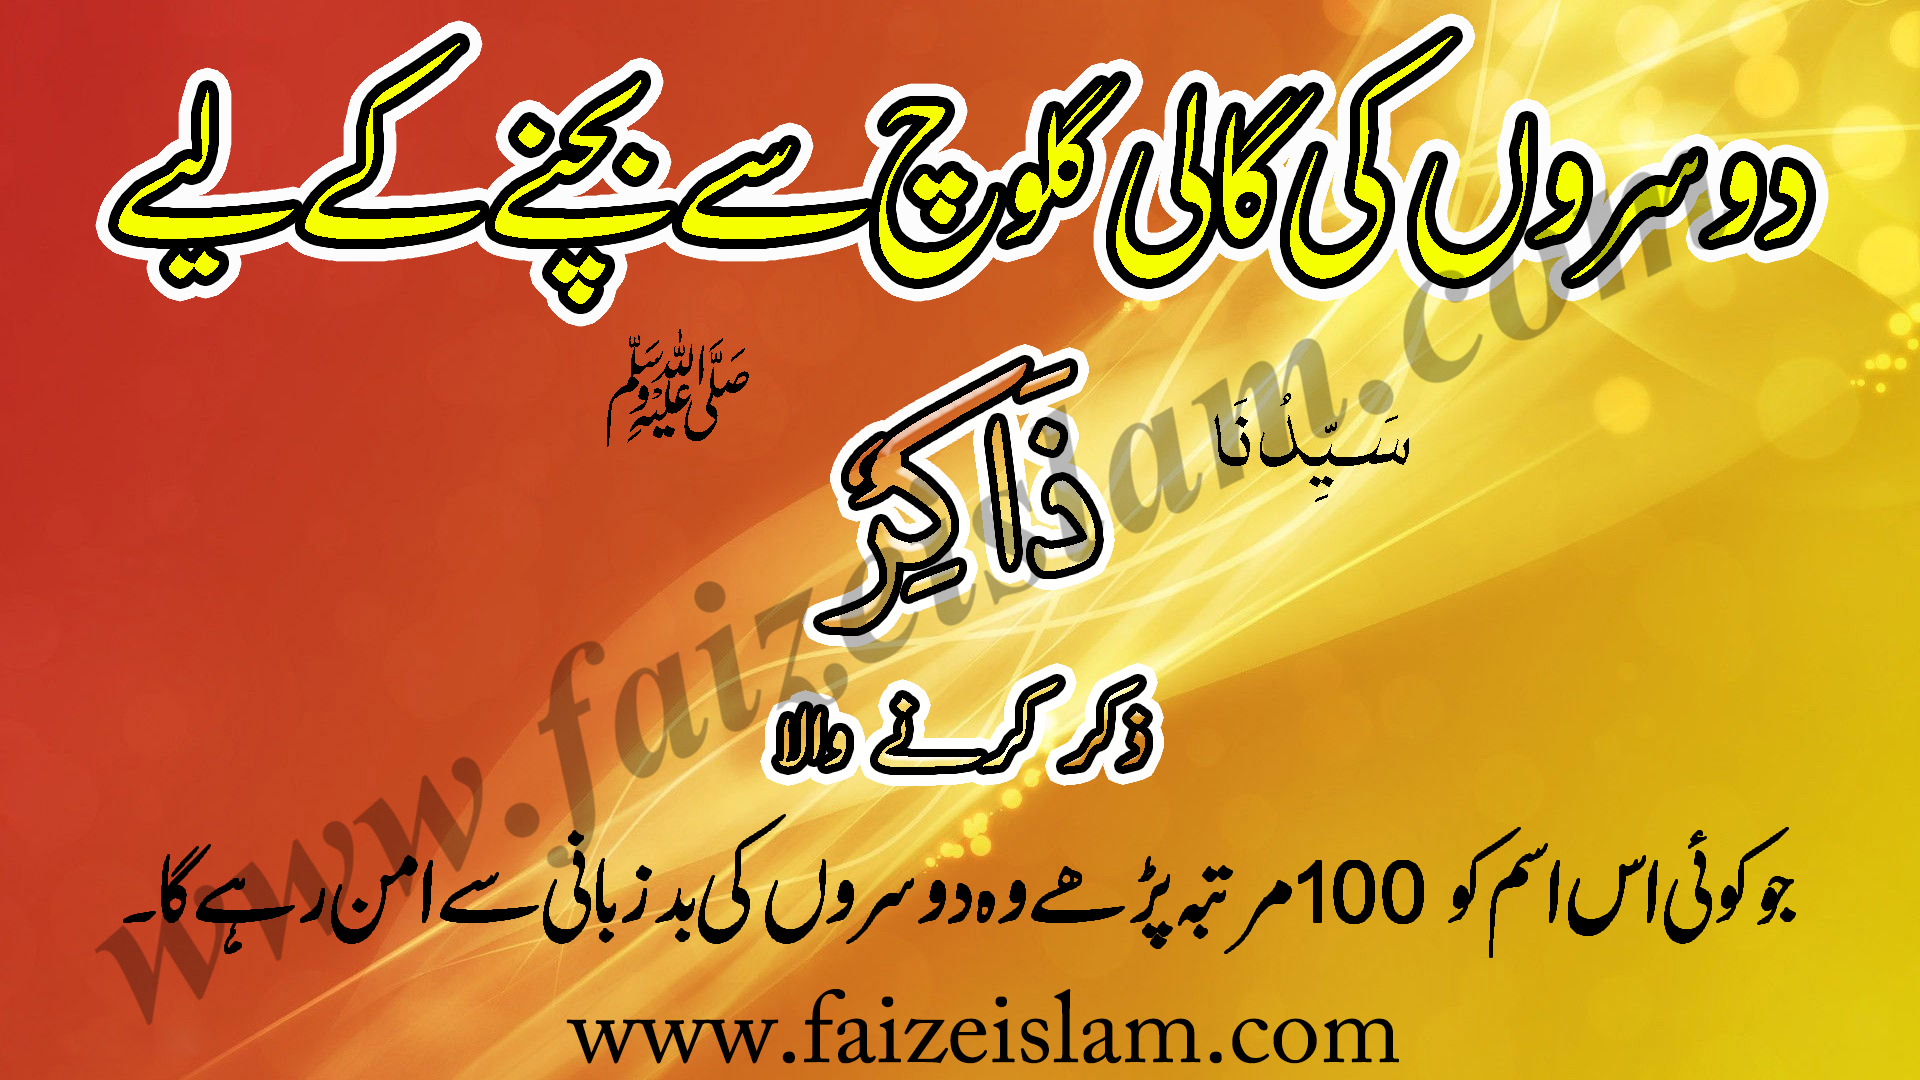 Dusroon Ki Gaali Galooch Say Bachnay Kay Liye Wazifa In Urdu